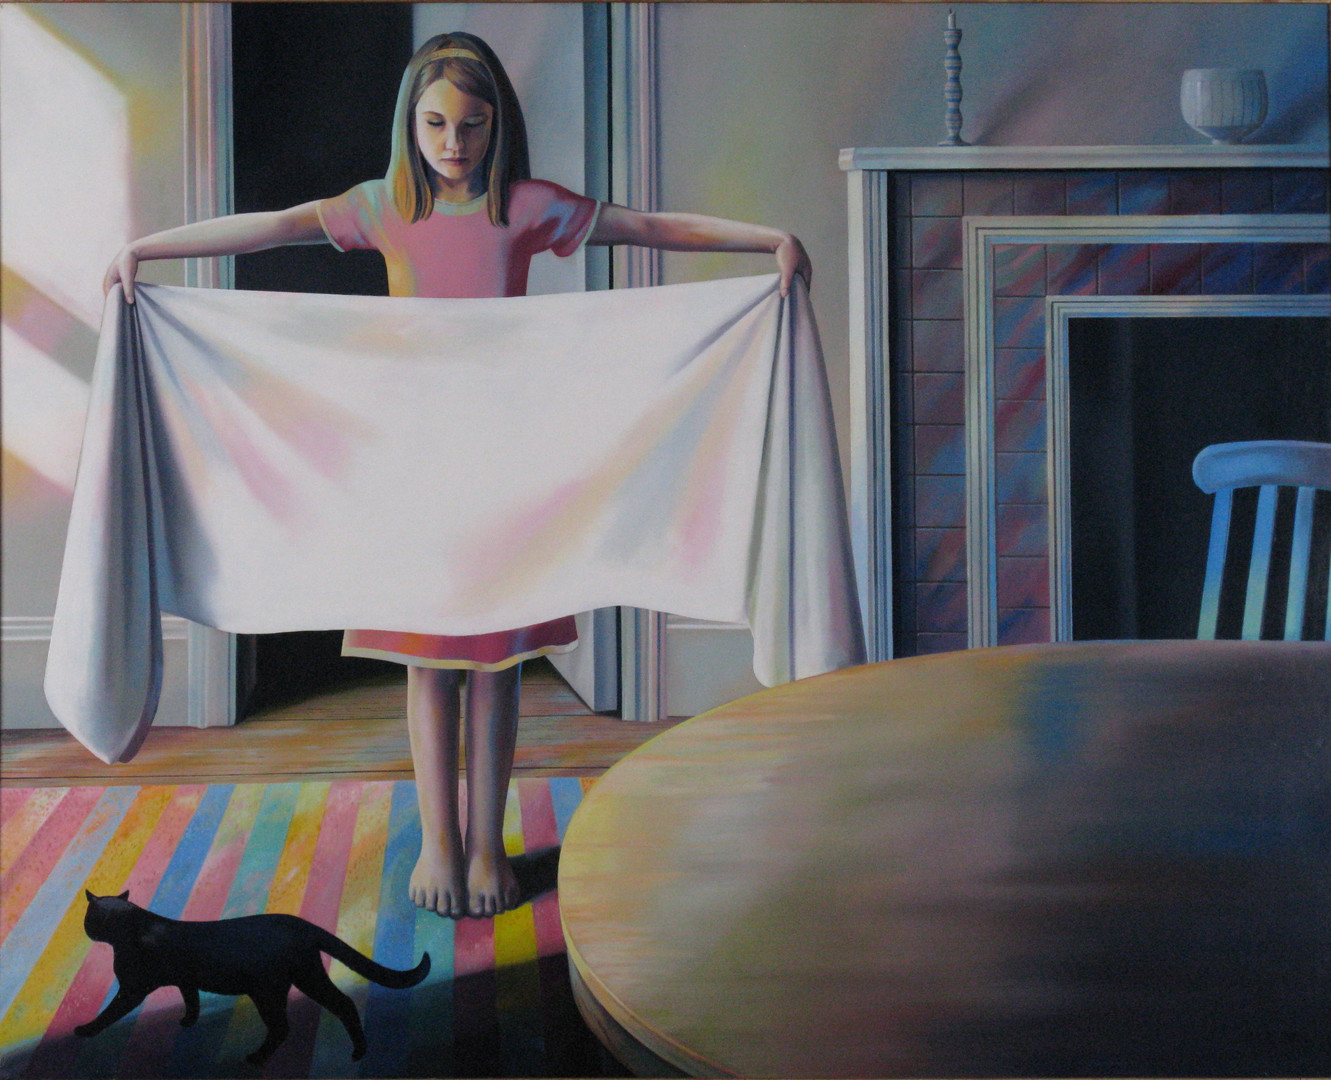 The Clean Tablecloth (2001)